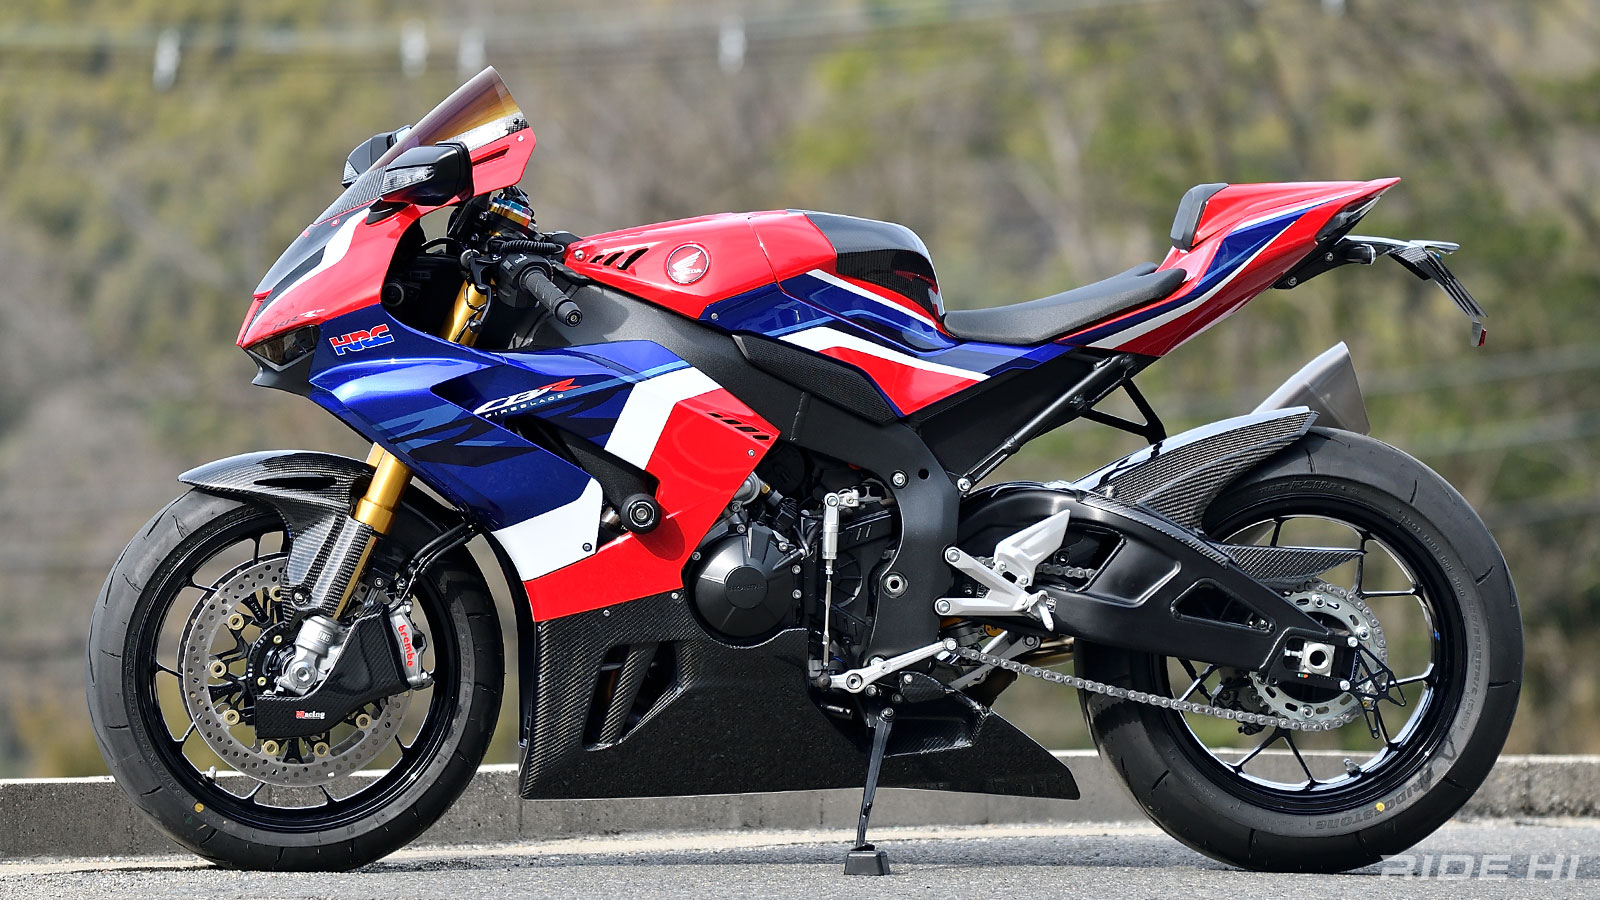 magicalracing_cbr1000rr-r_210315_01.jpg